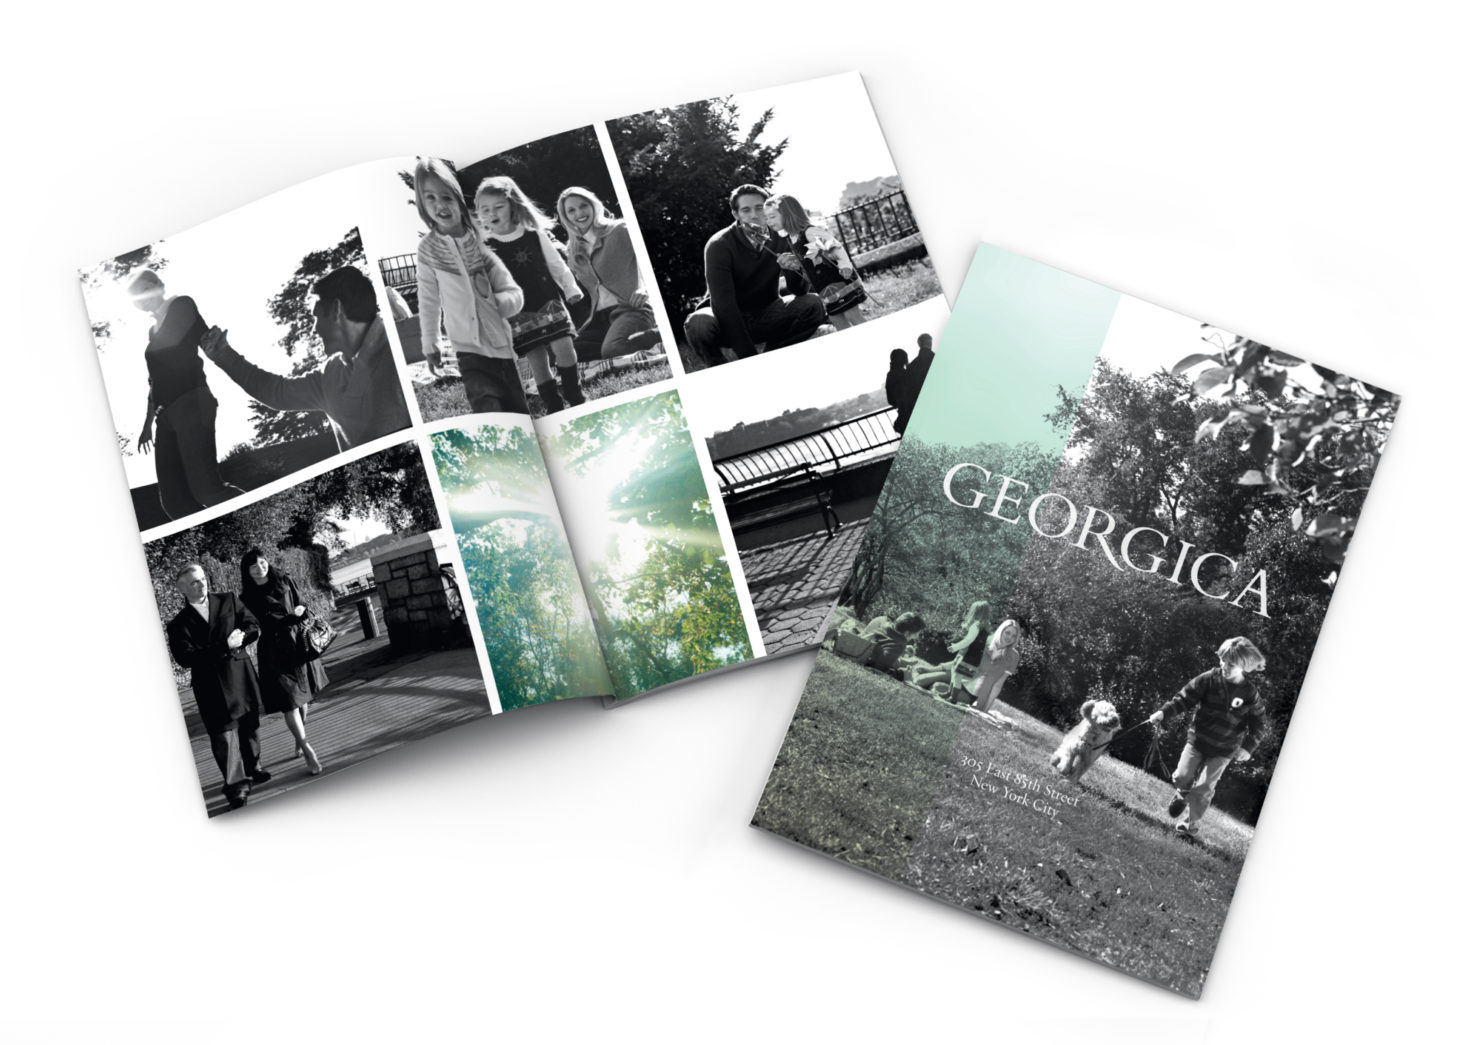 Georgica Brochure Slideshow 01